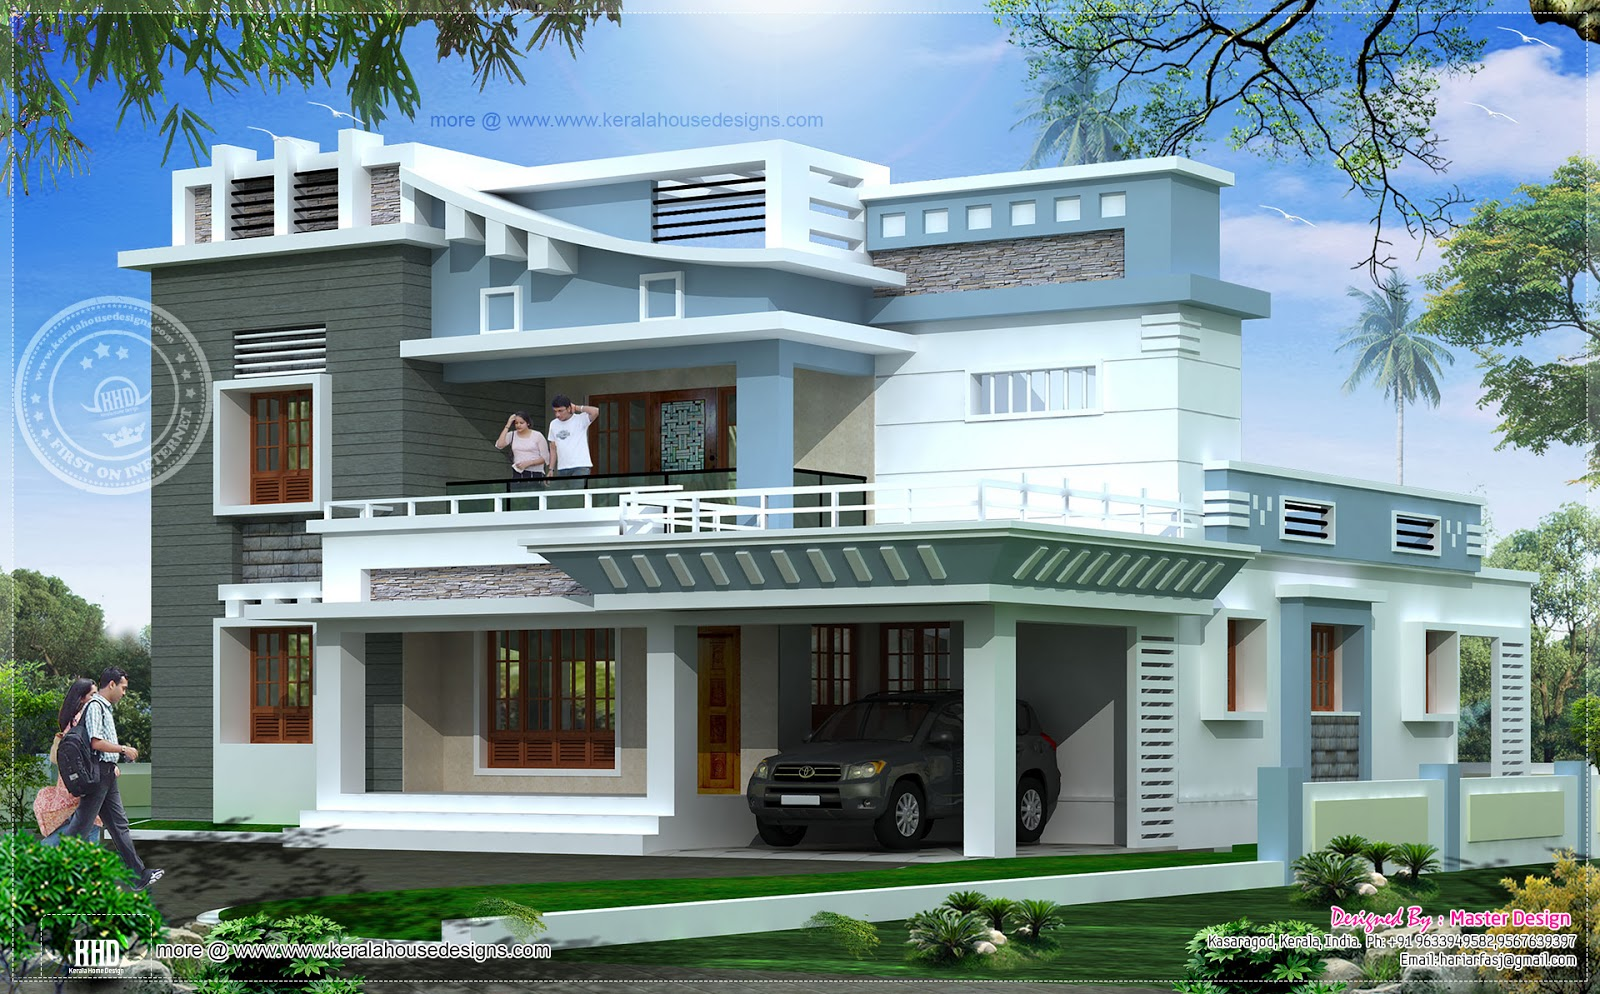 2547 square feet exterior home elevation house design plans for Home outside design images